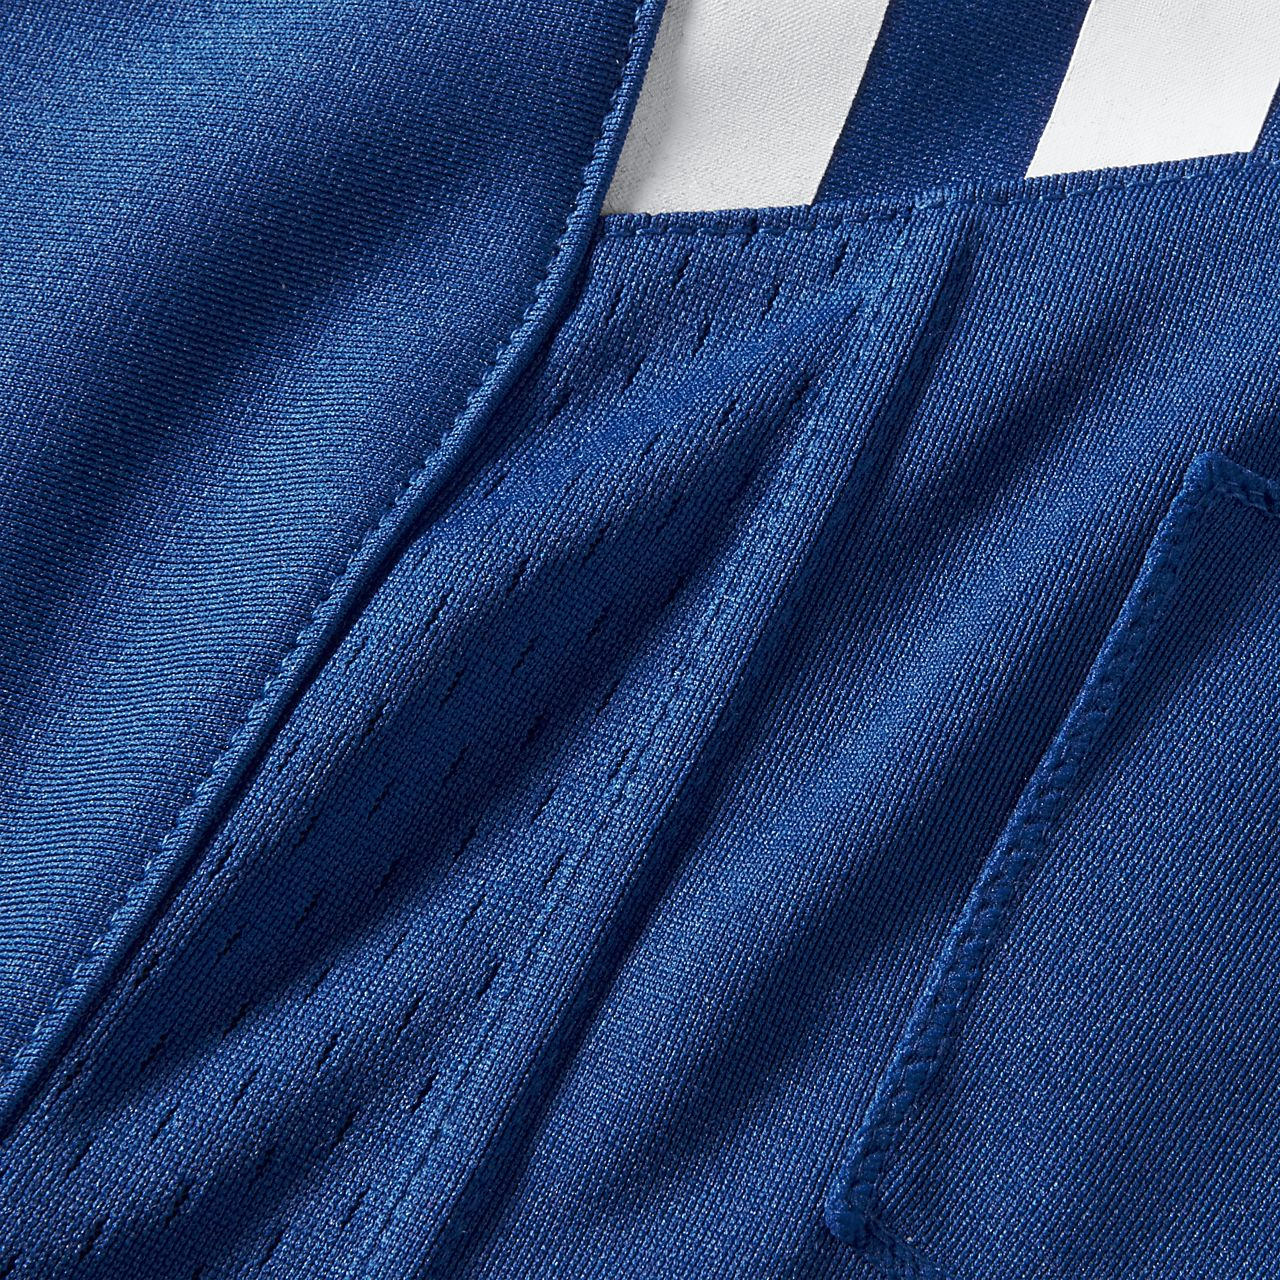 2c28e6ed ... NFL Indianapolis Colts (Andrew Luck) Men's American Football Home Game  Jersey